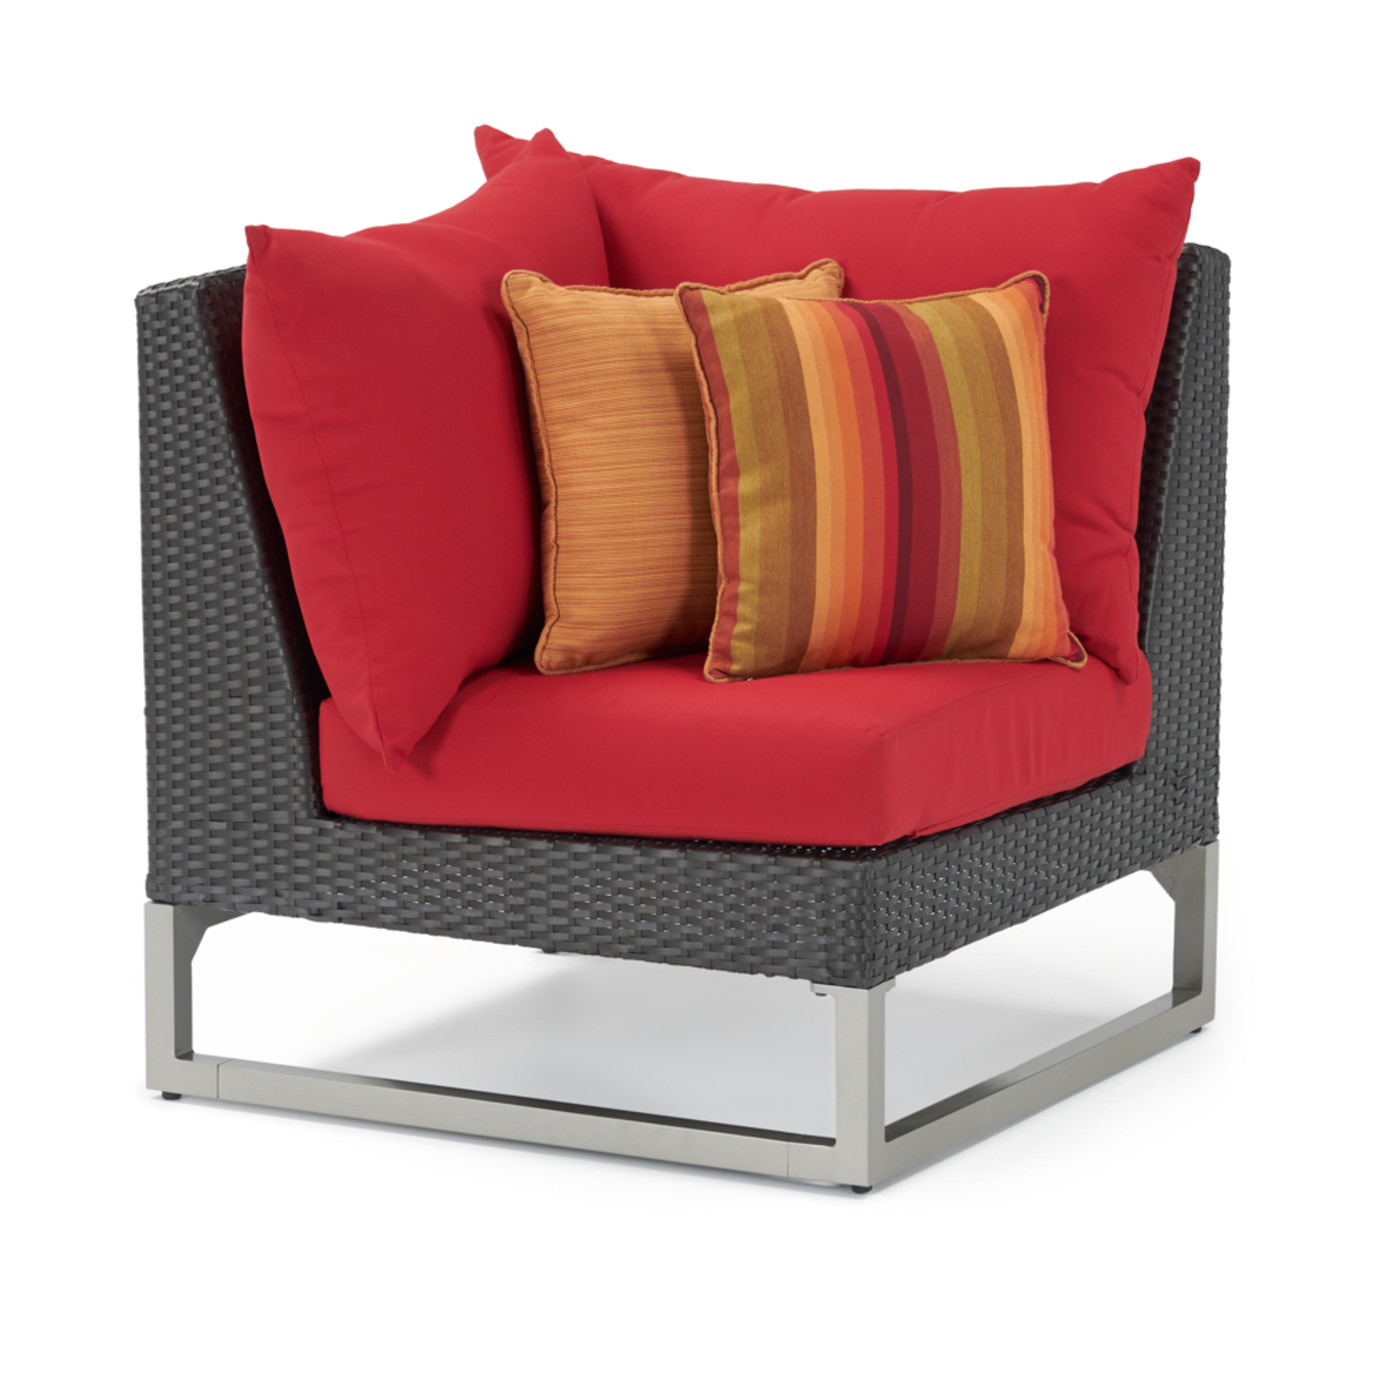 Milo Espresso 6 Piece Fire Sectional - Sunset Red